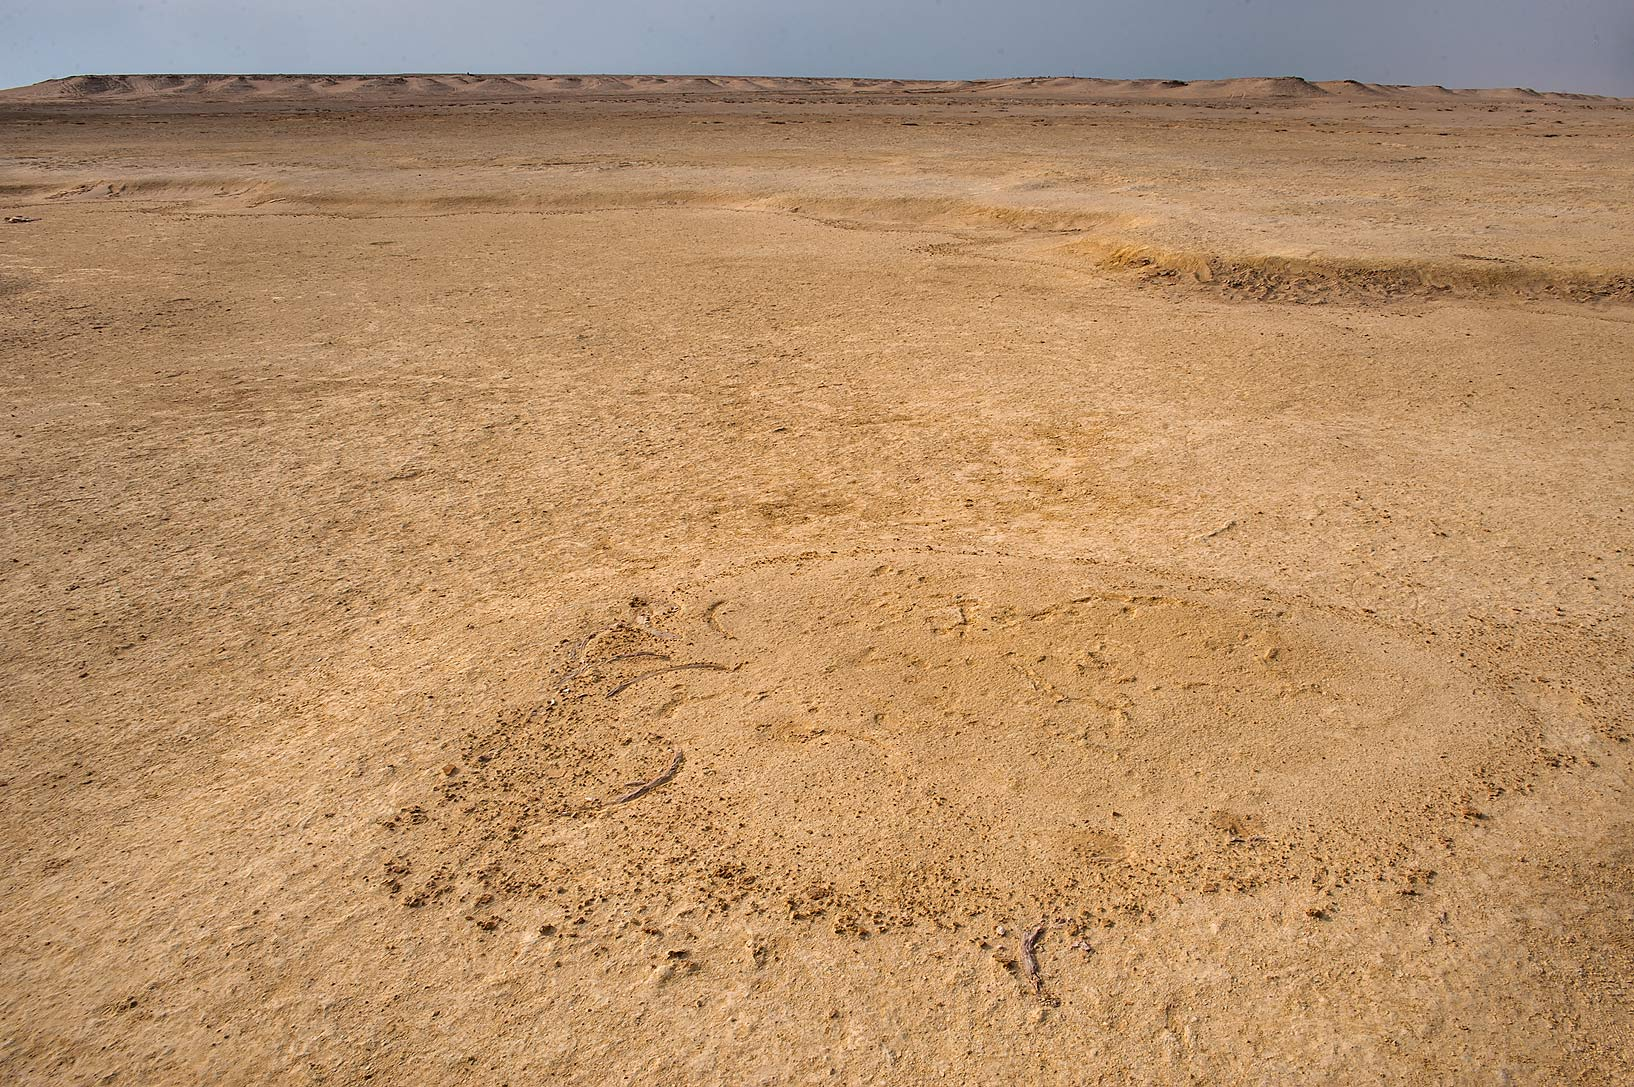 Small mound with fossilized dugong bones in area of coastal sabkha in south-western Qatar